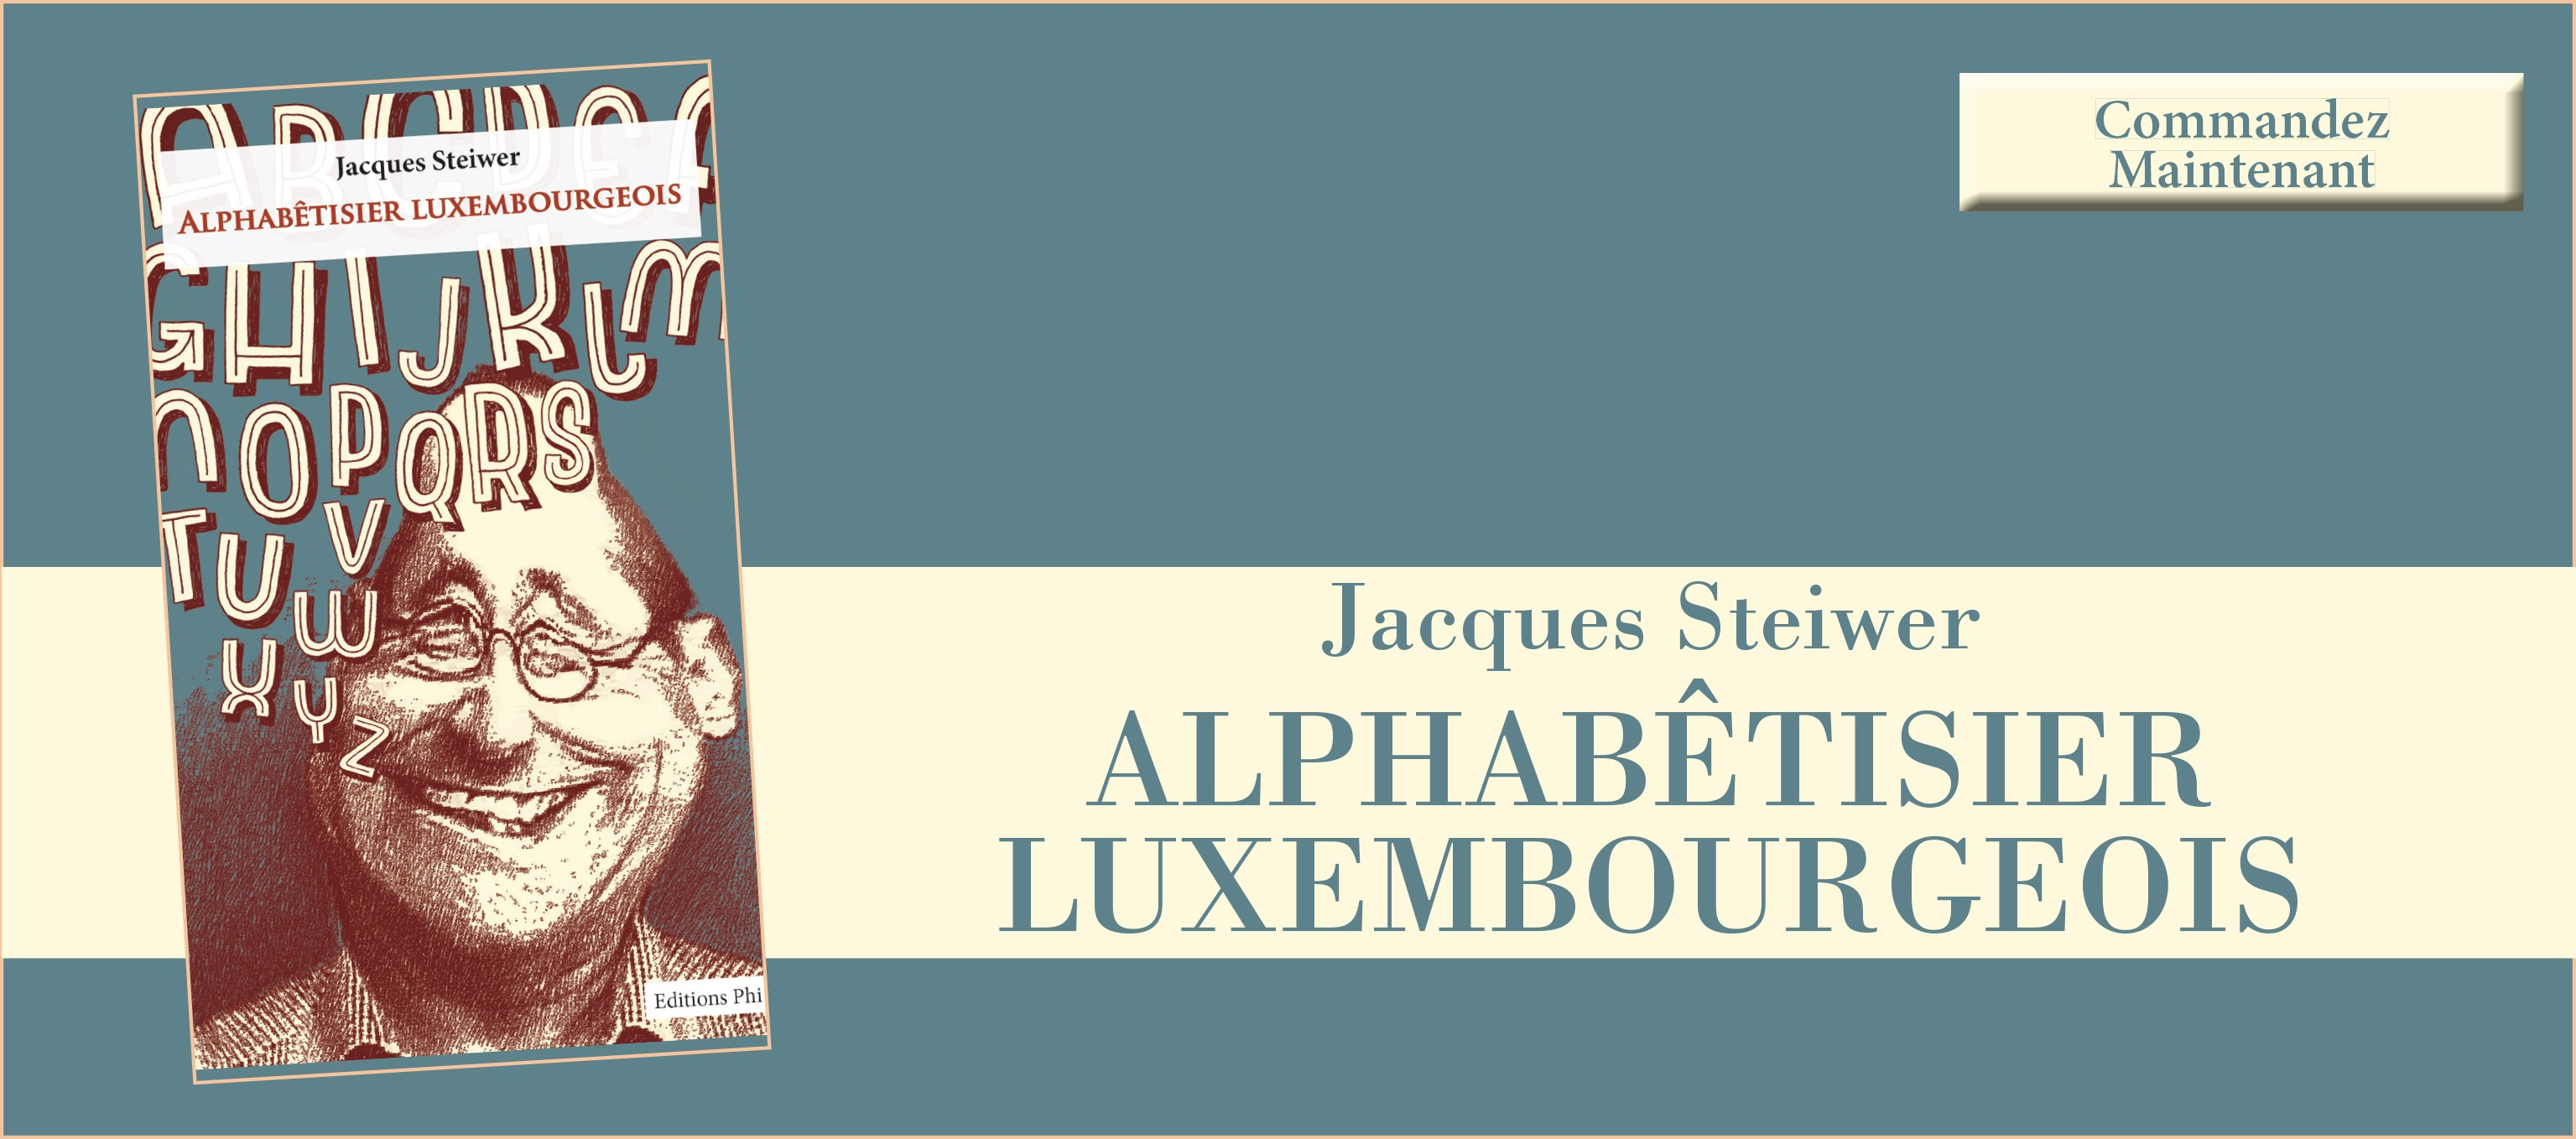 Jacques Steiwer - Alphabêtisier Luxembourgeois